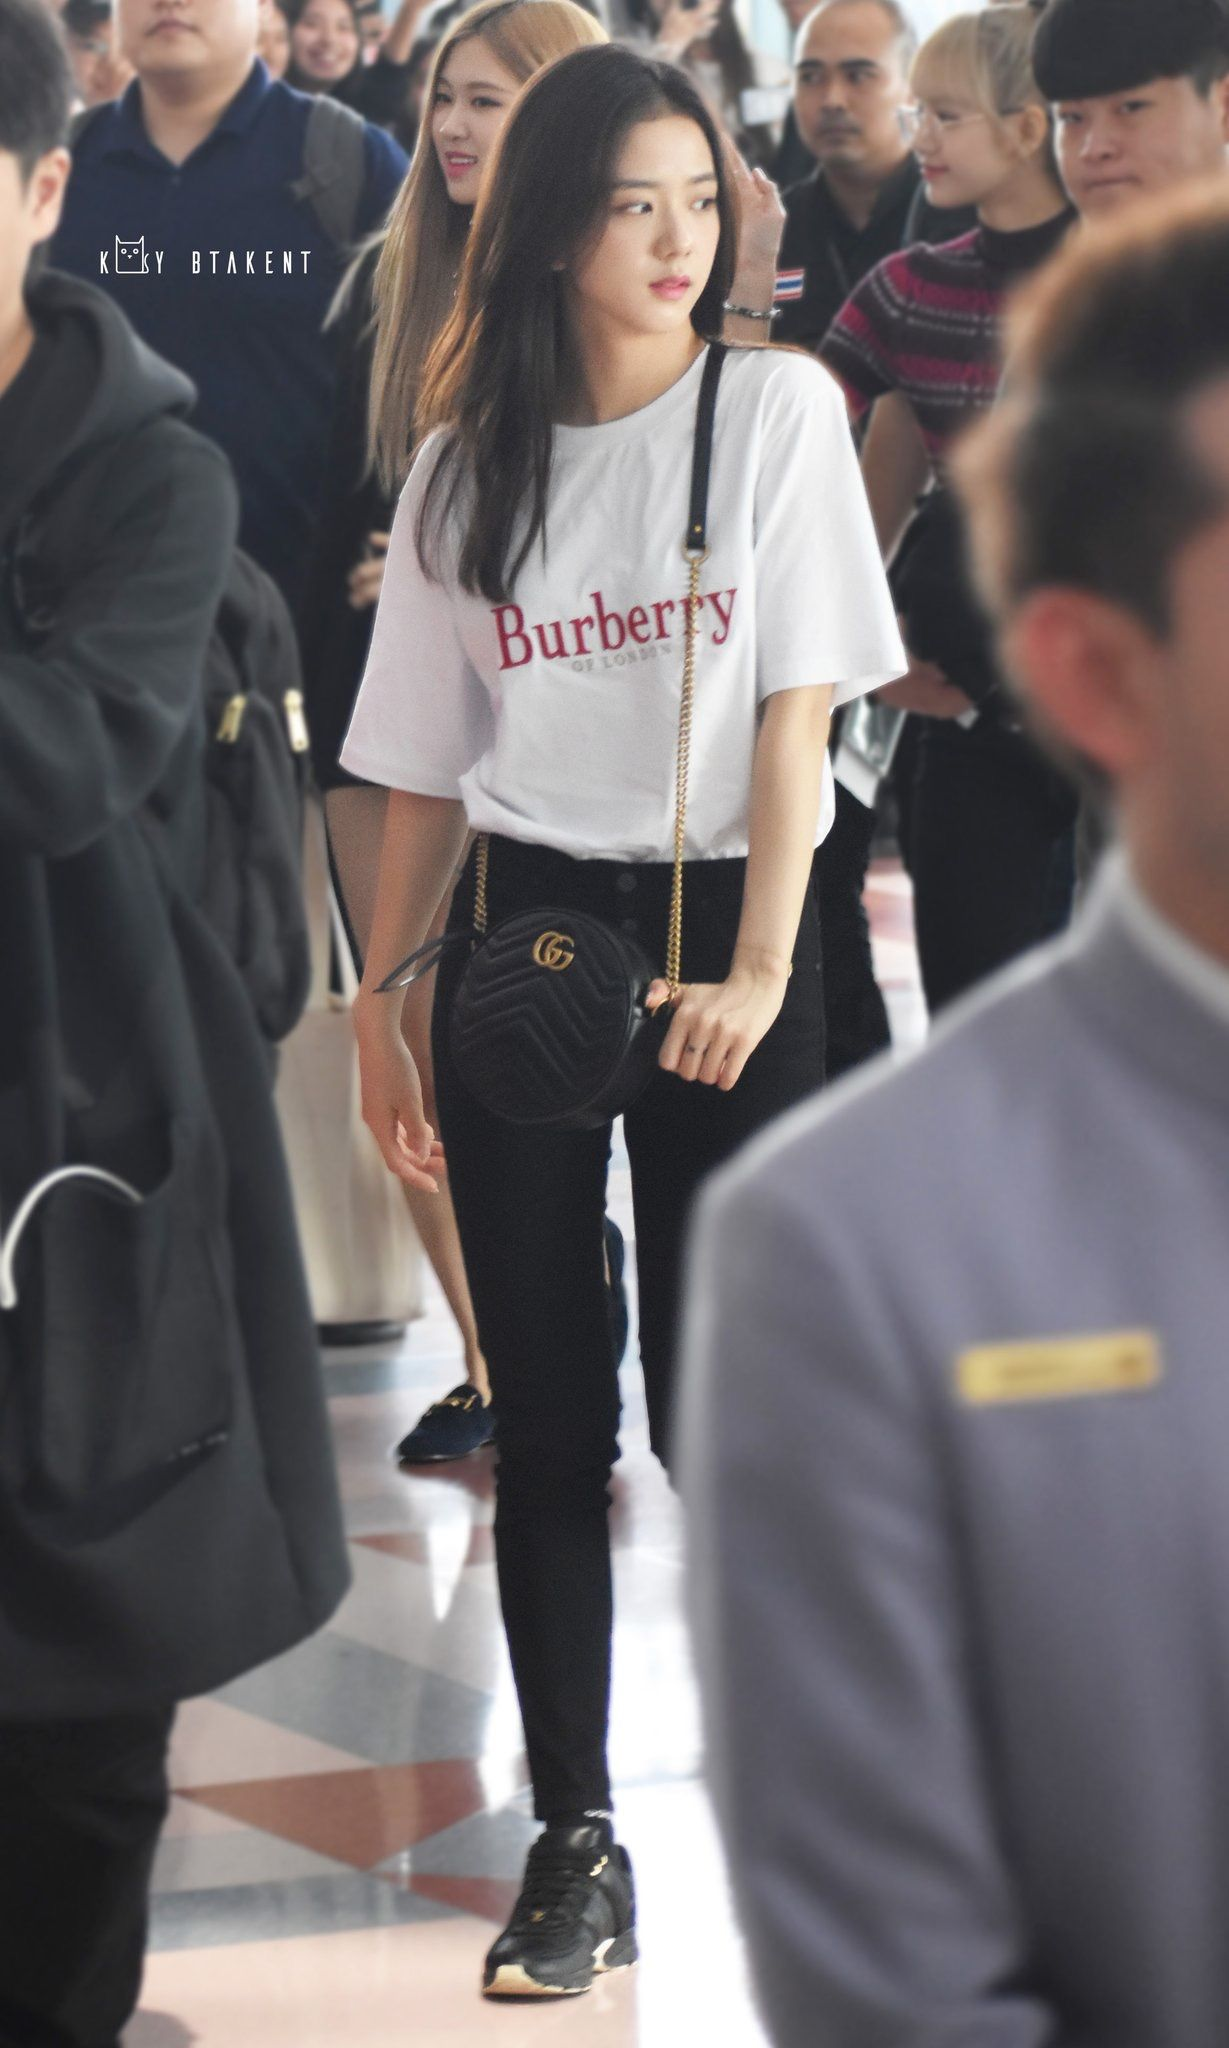 Pin by よしのり on Black pink ジス | Blackpink fashion, Airport ...